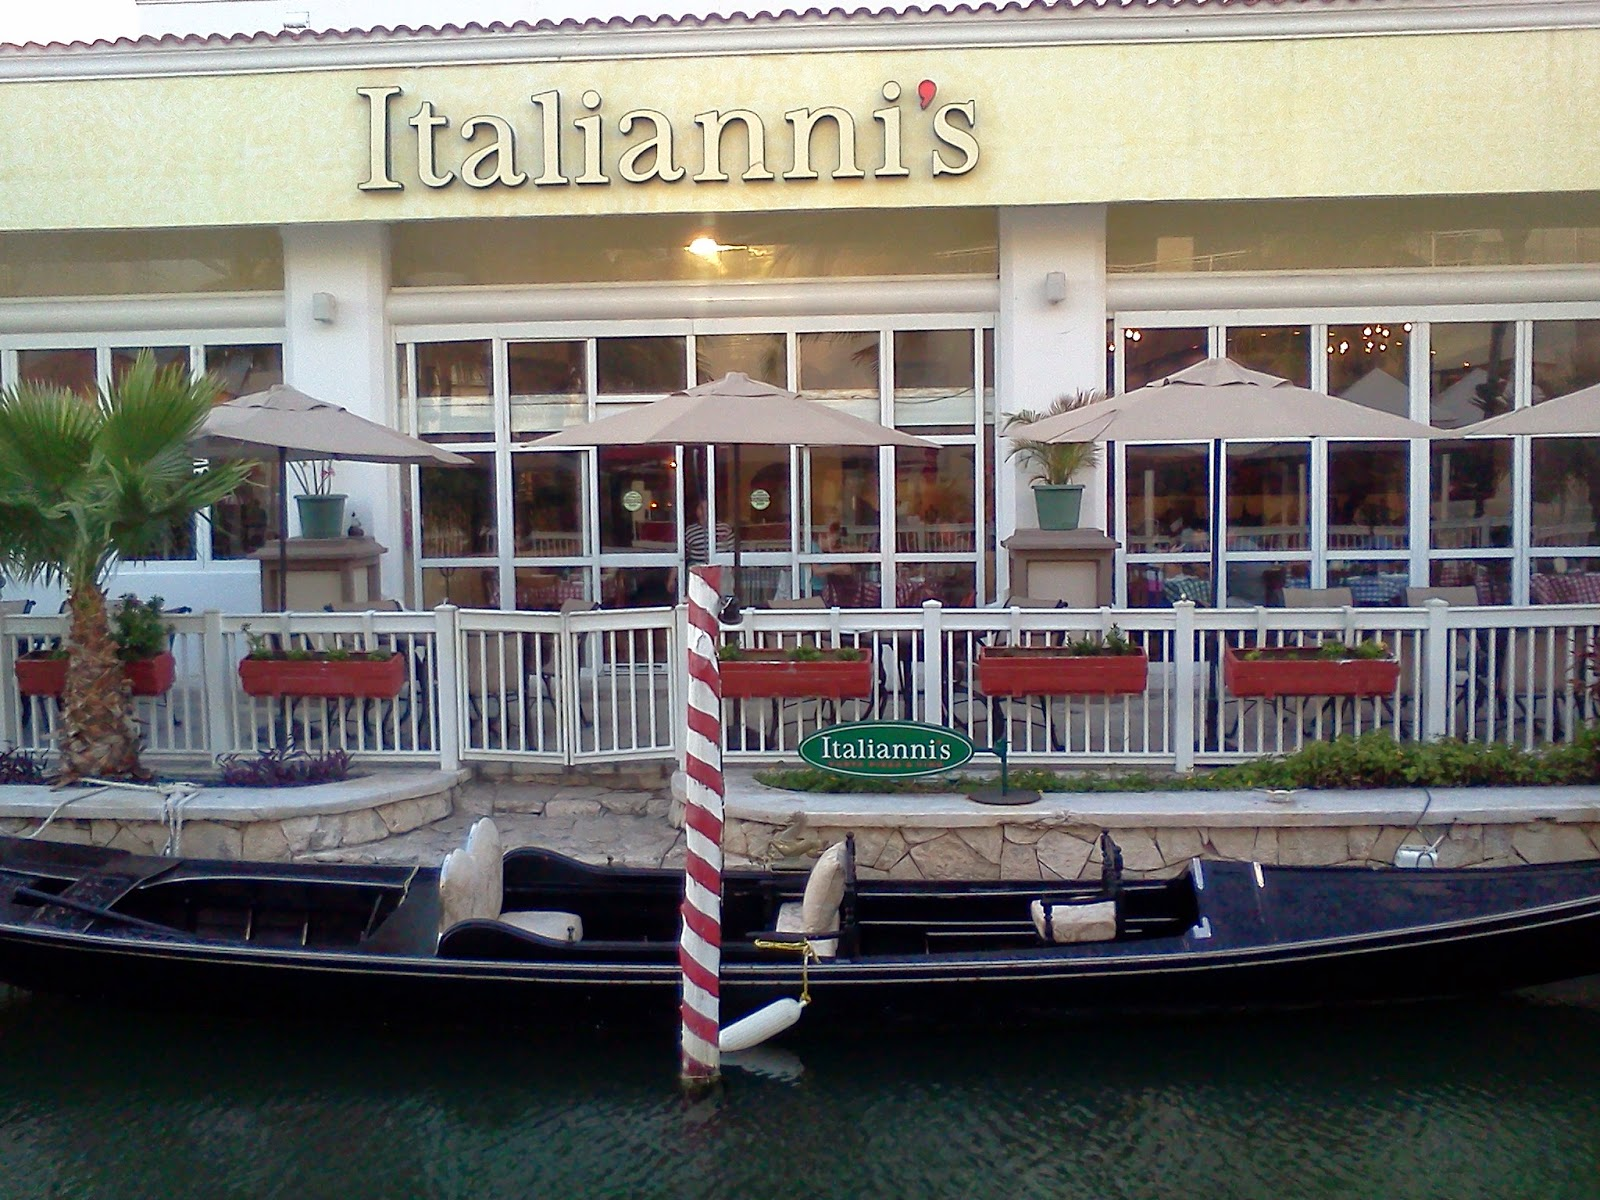 Gondola Boat in front of Italiannis